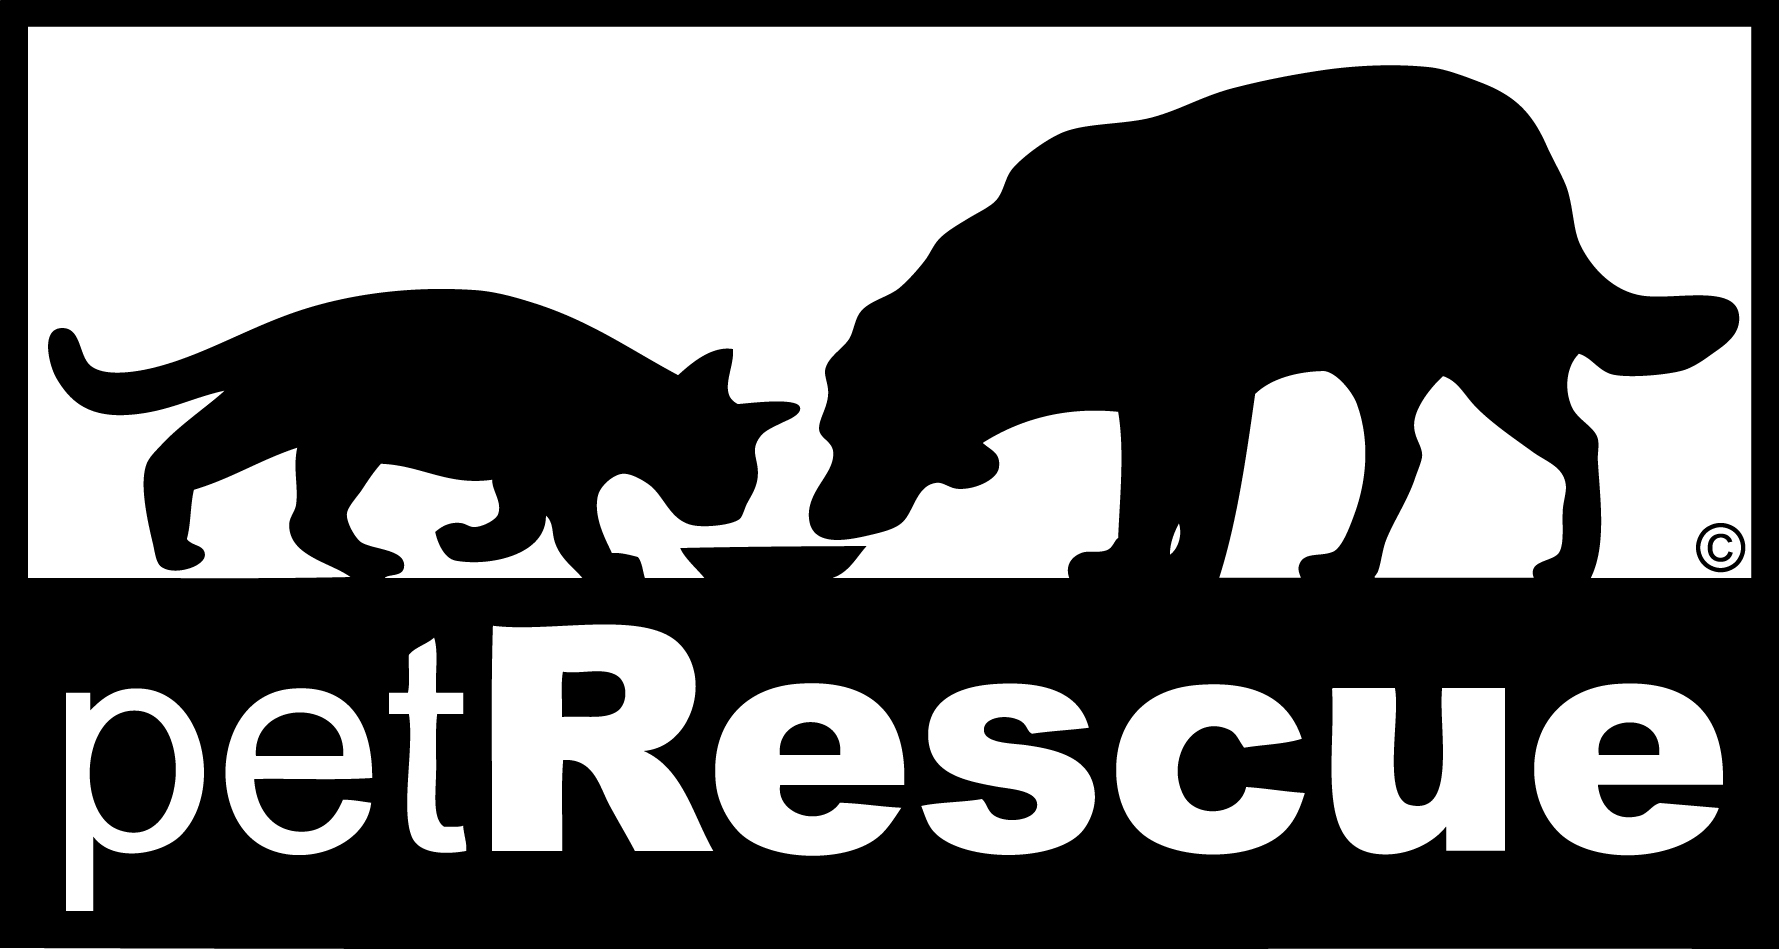 pet-rescue-2014-logo-with-copyright.jpg